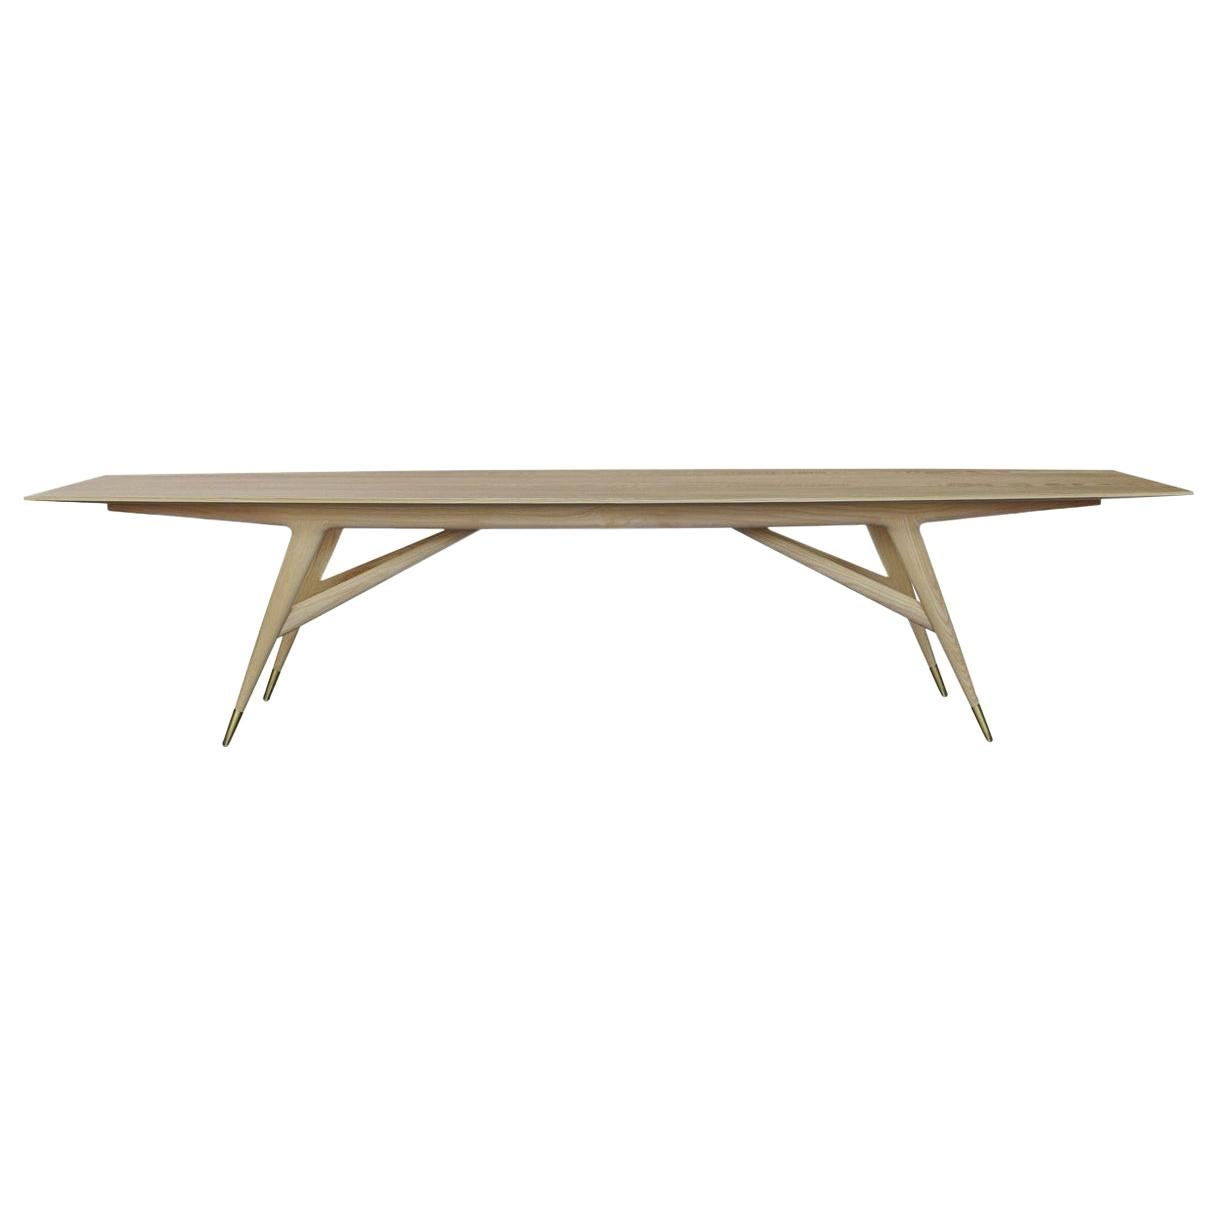 Molteni&C D.859.1C Dining/Conference Table in Natural Ash Wood by Gio Ponti